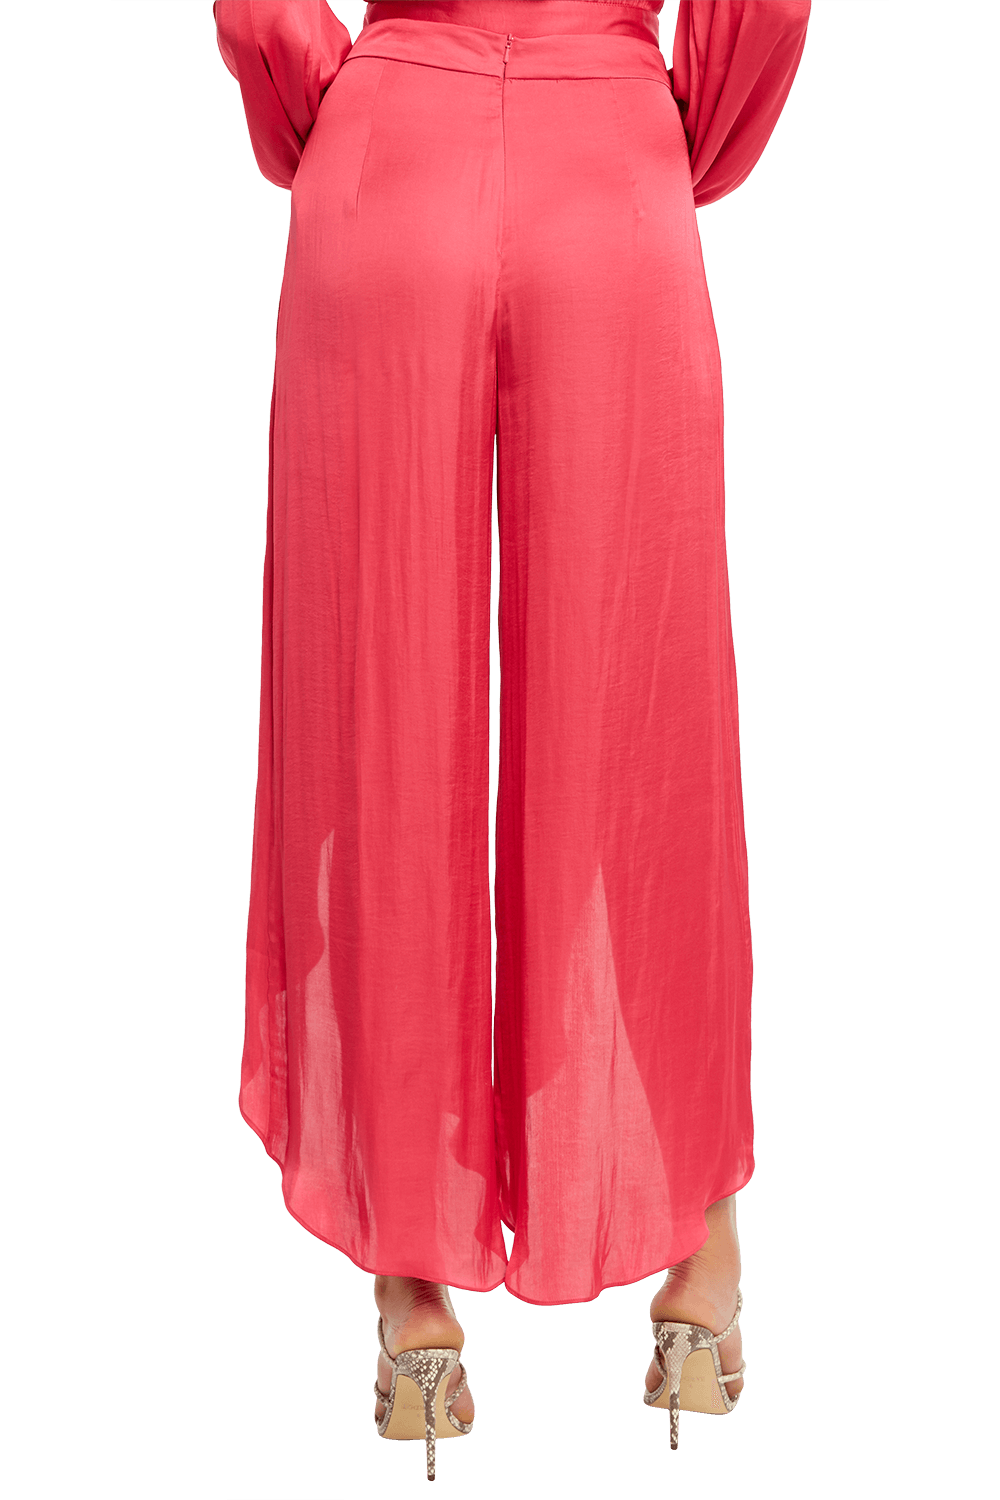 KAYLAH PETAL PANT in colour BEETROOT PURPLE